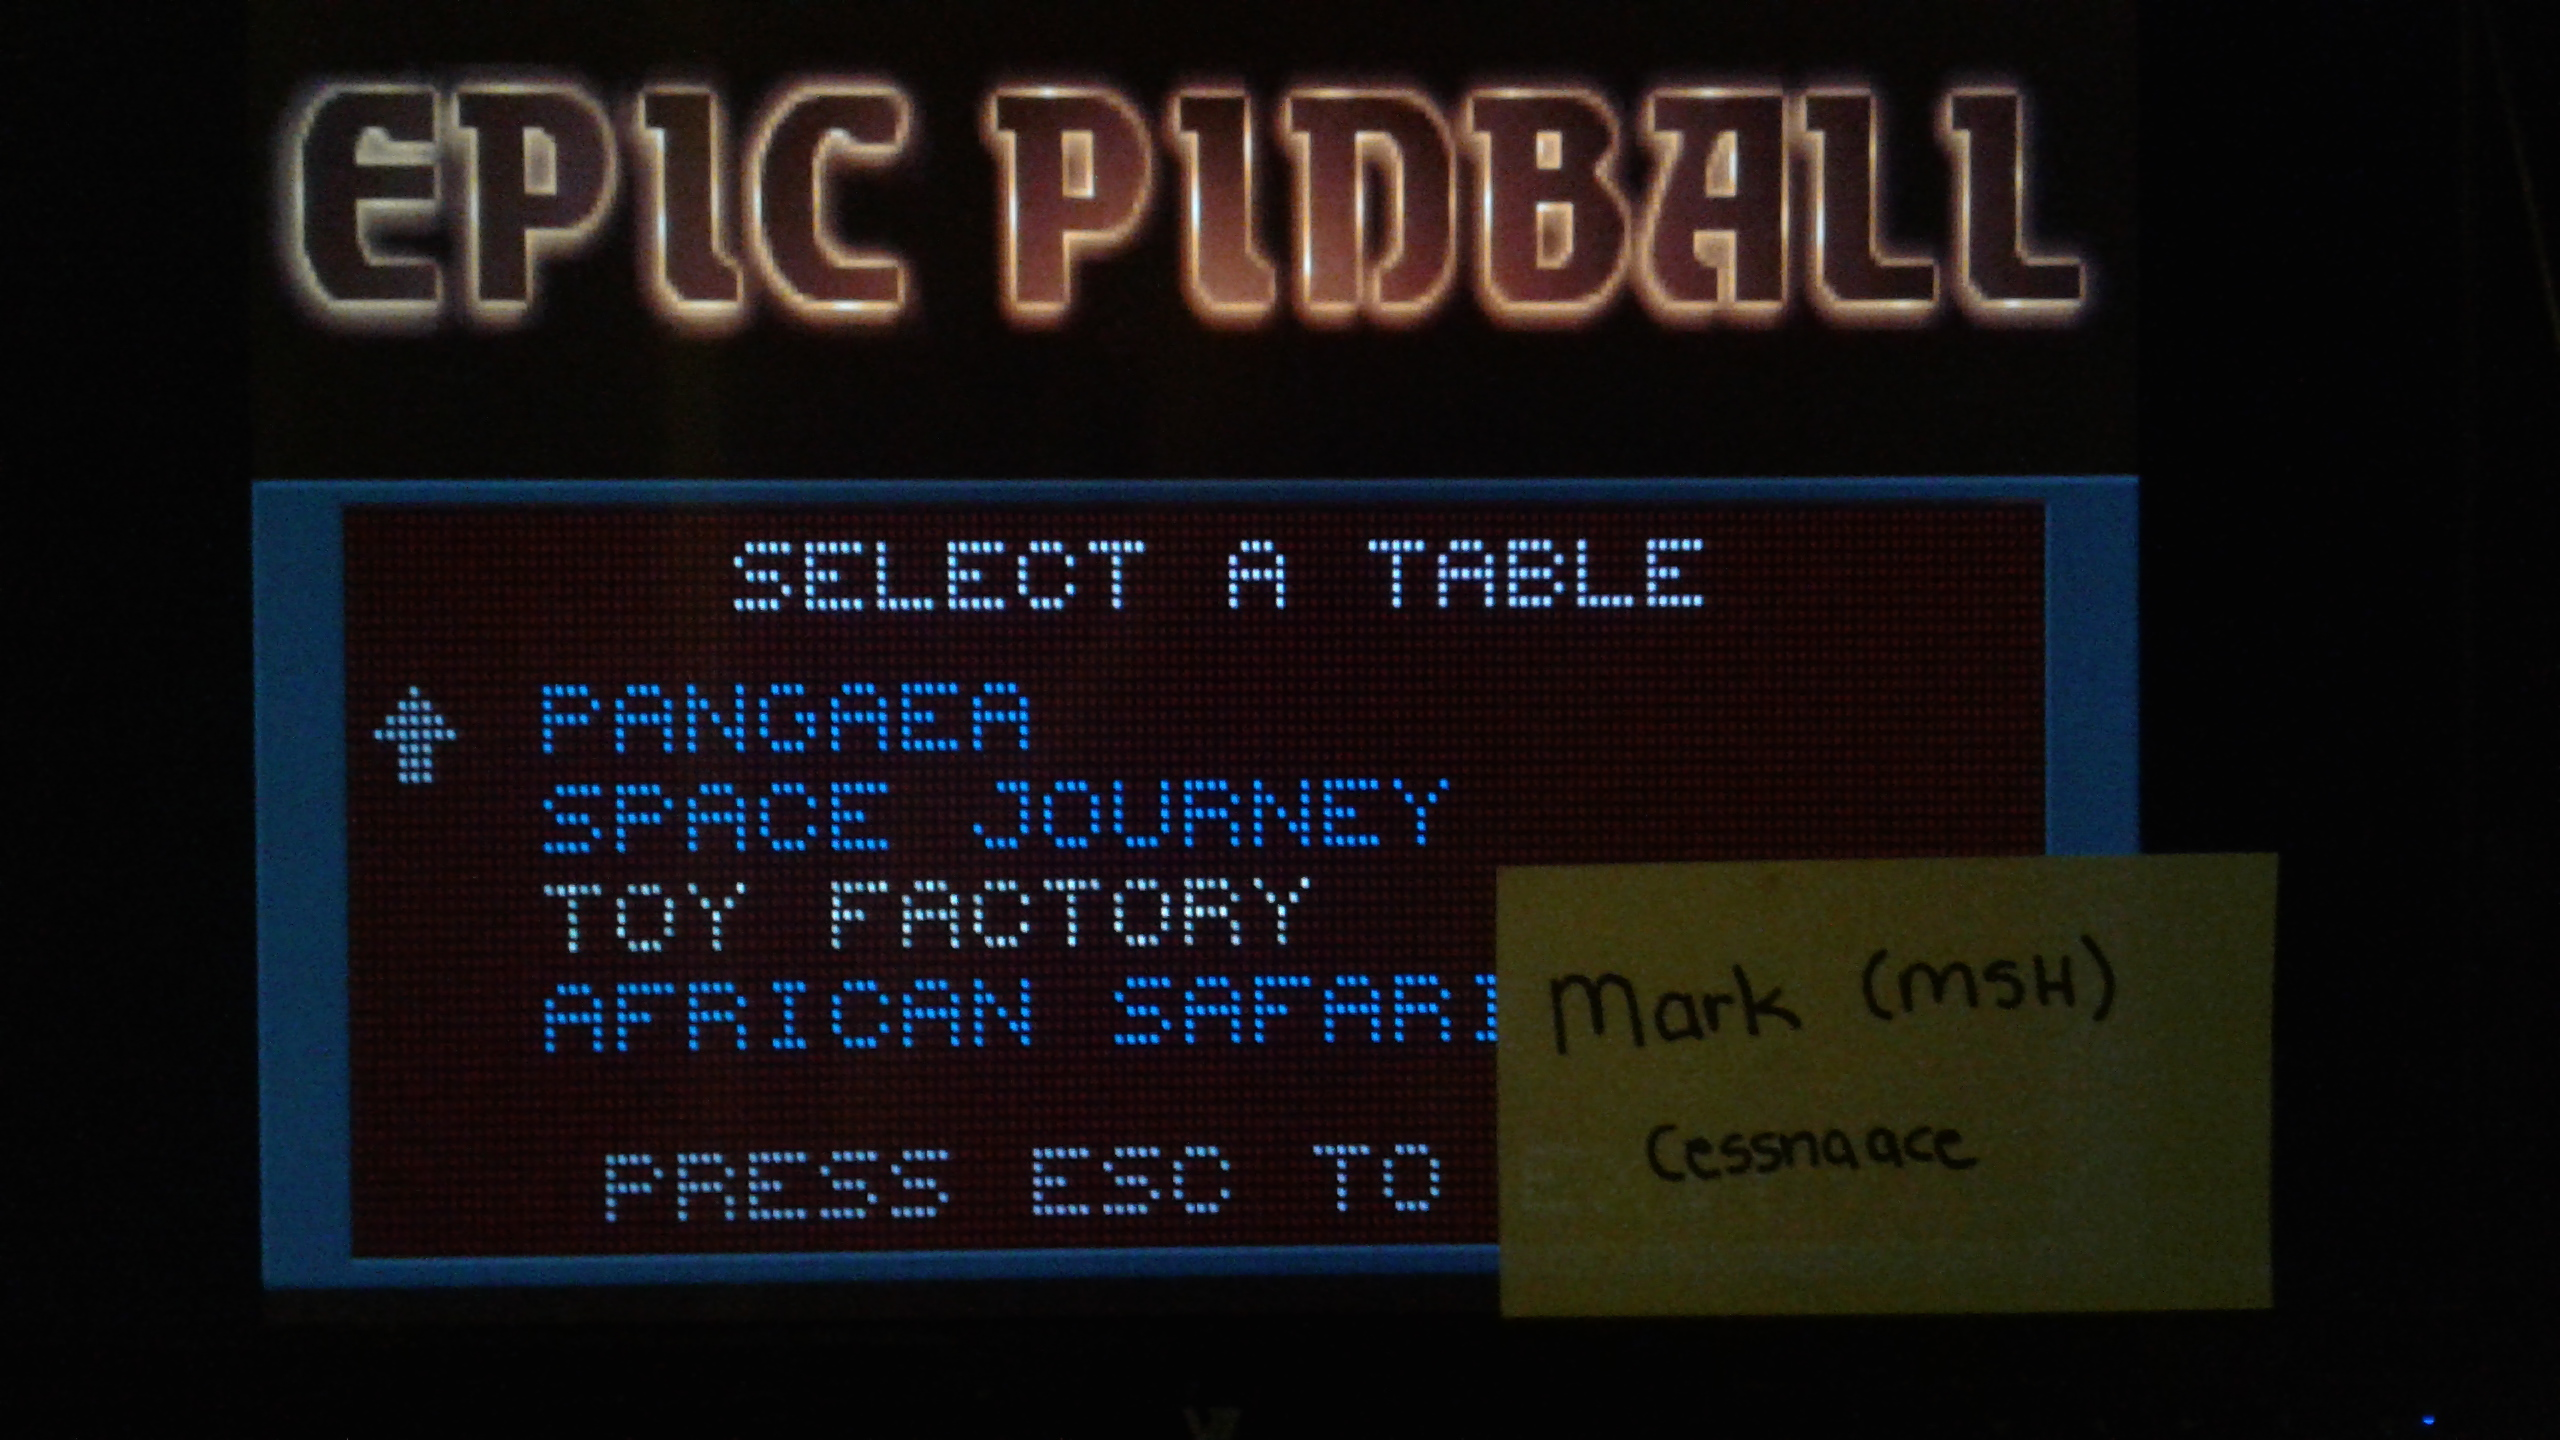 Mark: Epic Pinball: Toy Factory (PC Emulated / DOSBox) 16,174,990 points on 2019-05-15 00:59:02